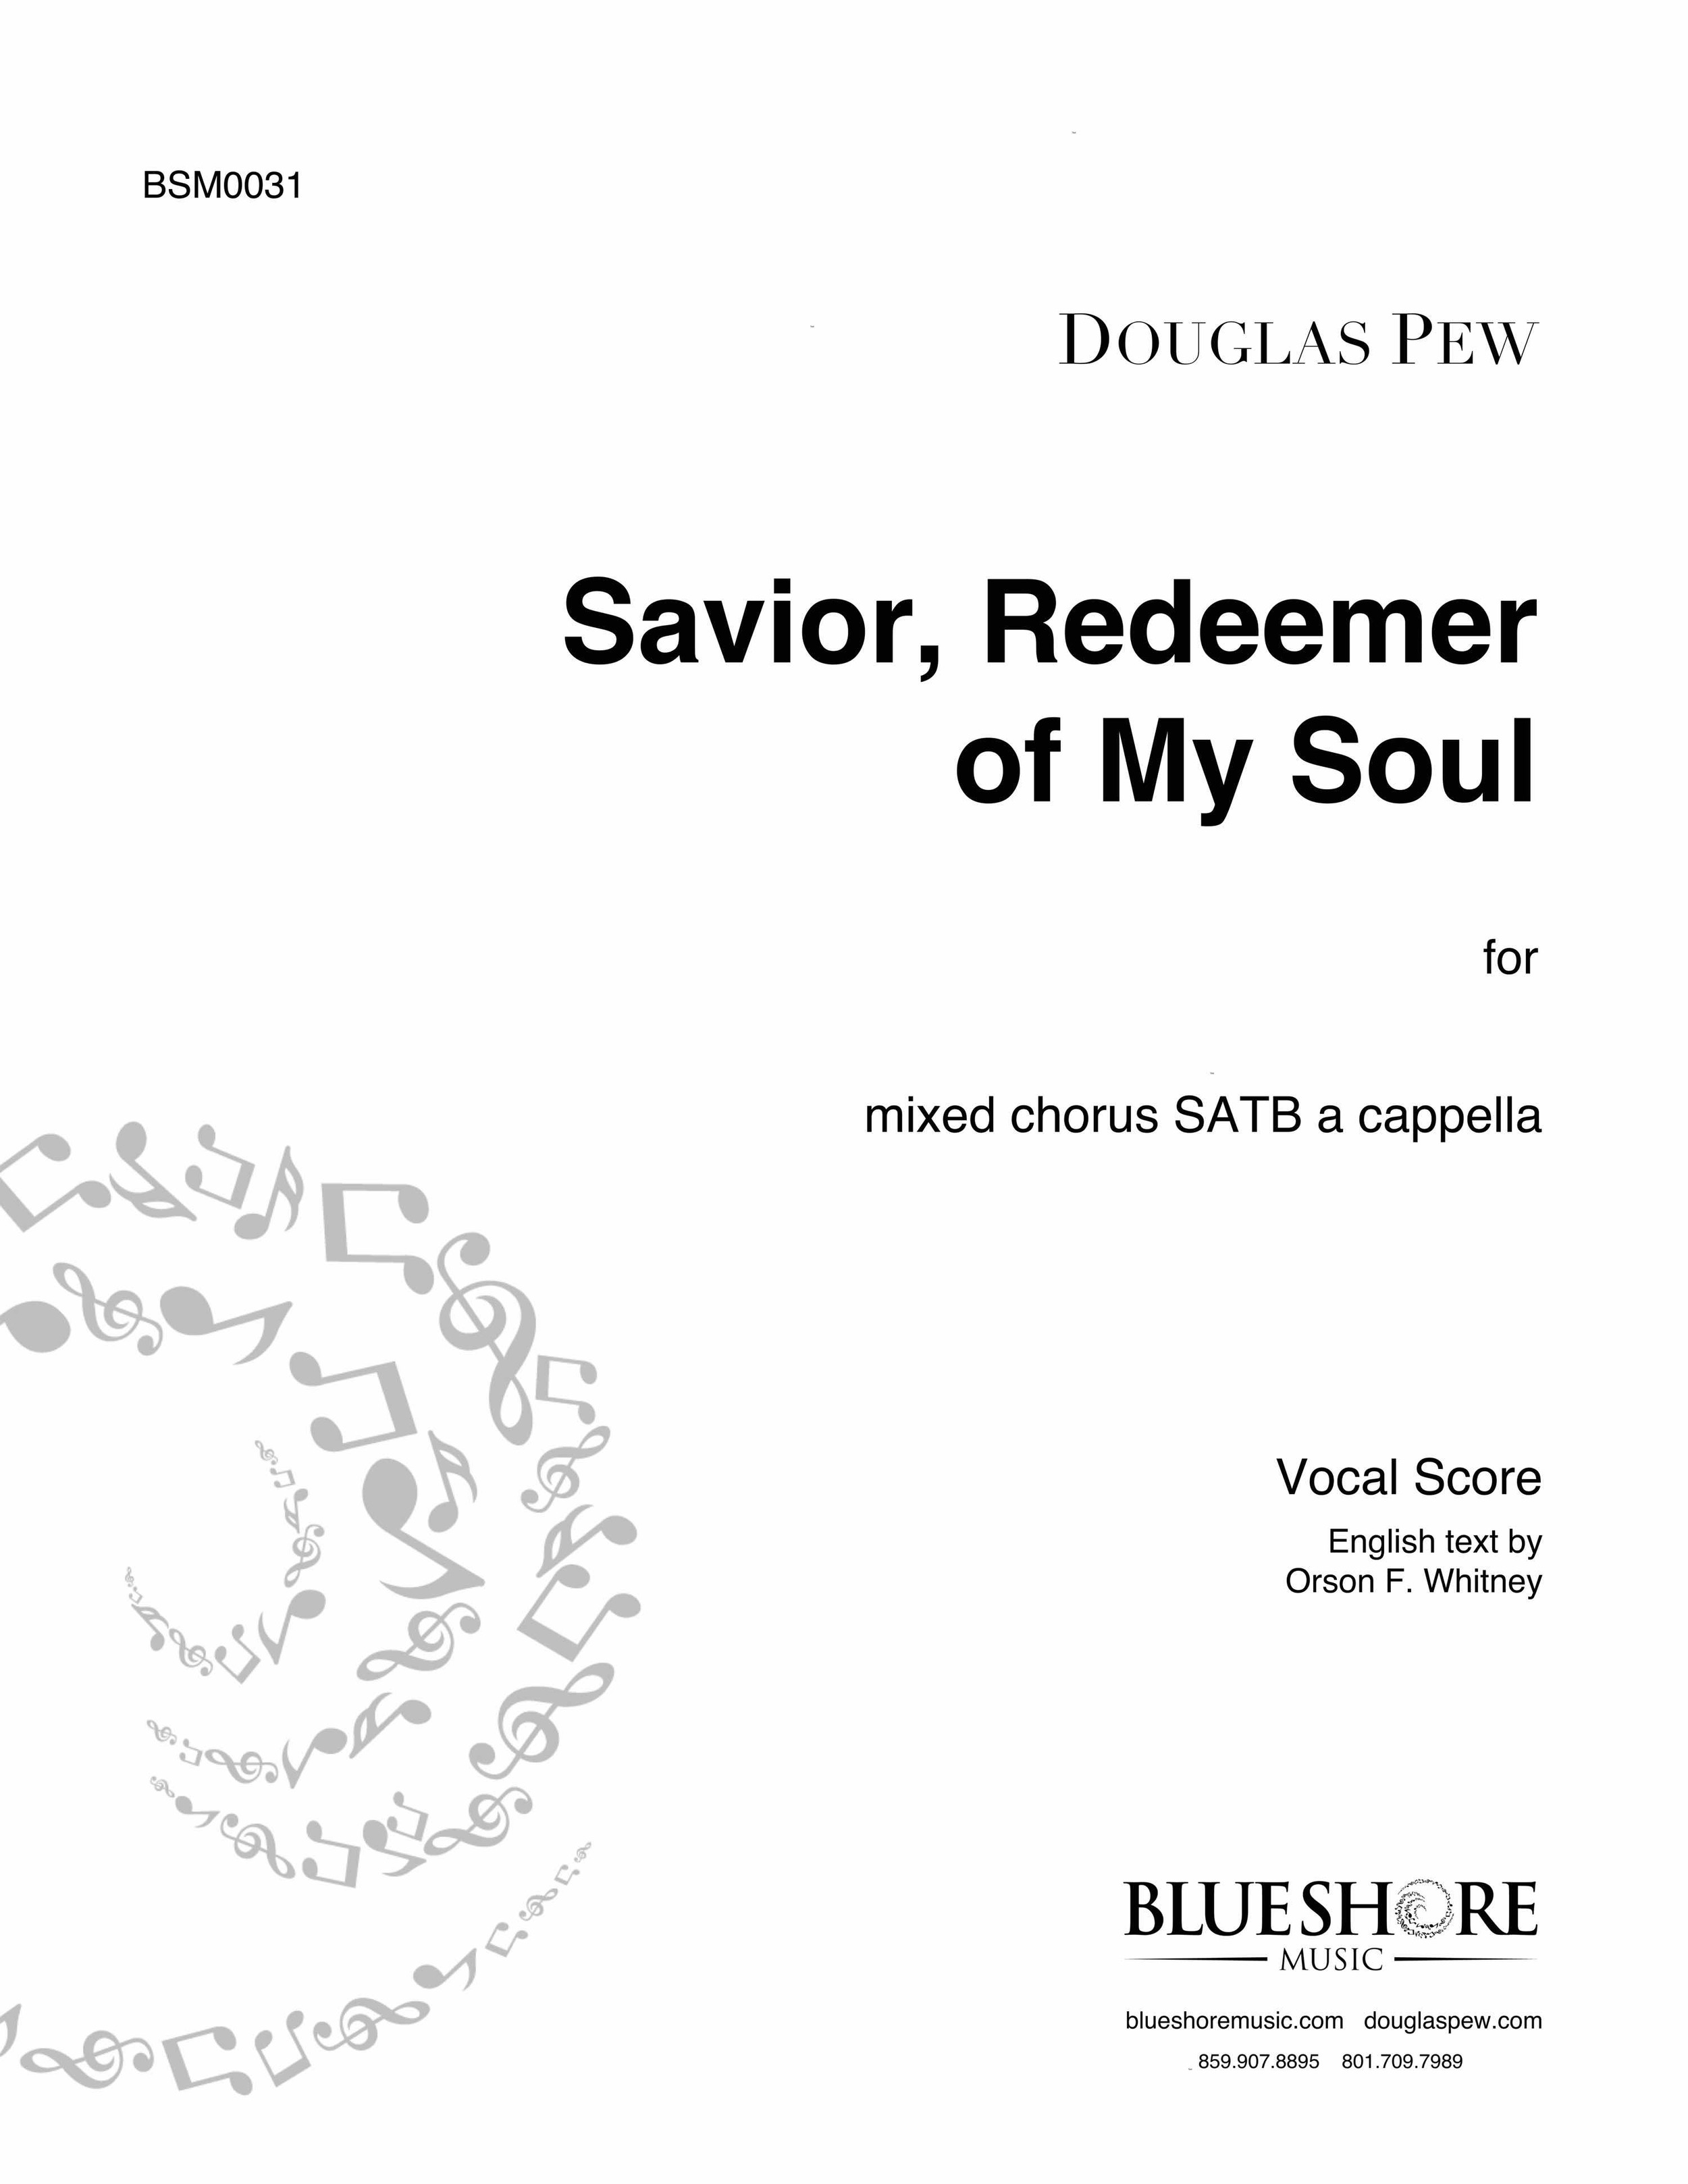 Savior, Redeemer of My Soul , for SATB a cappella